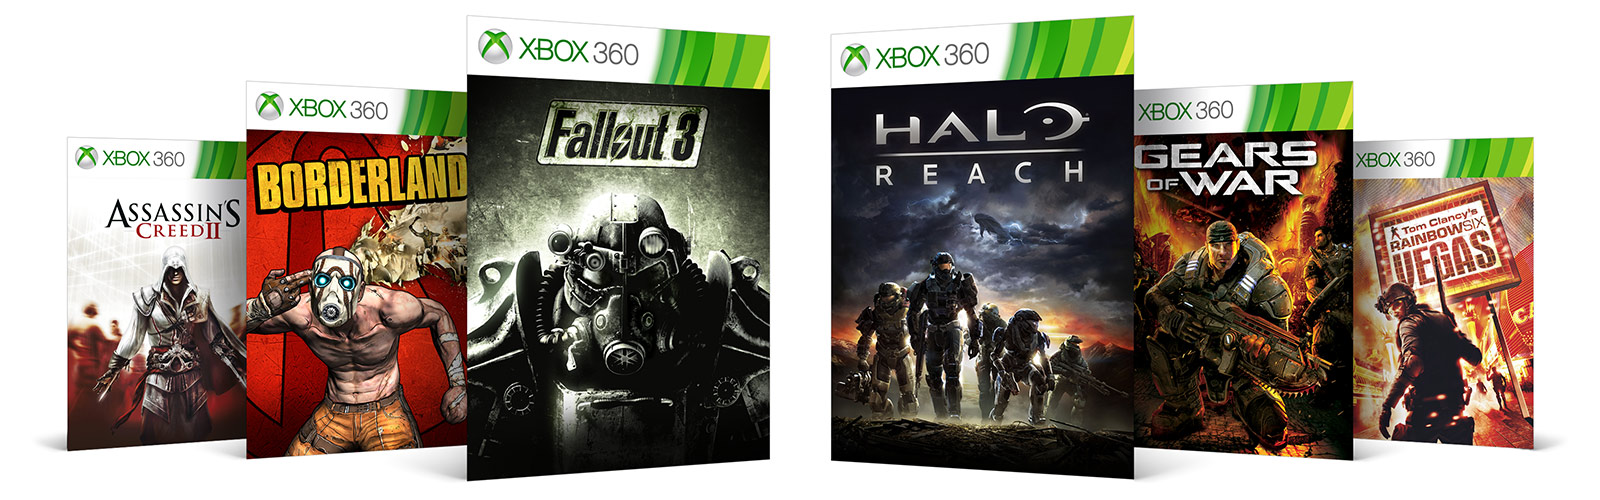 Juegos disponibles en Xbox 360, incluidos Fallout 3, Halo Reach y Borderlands